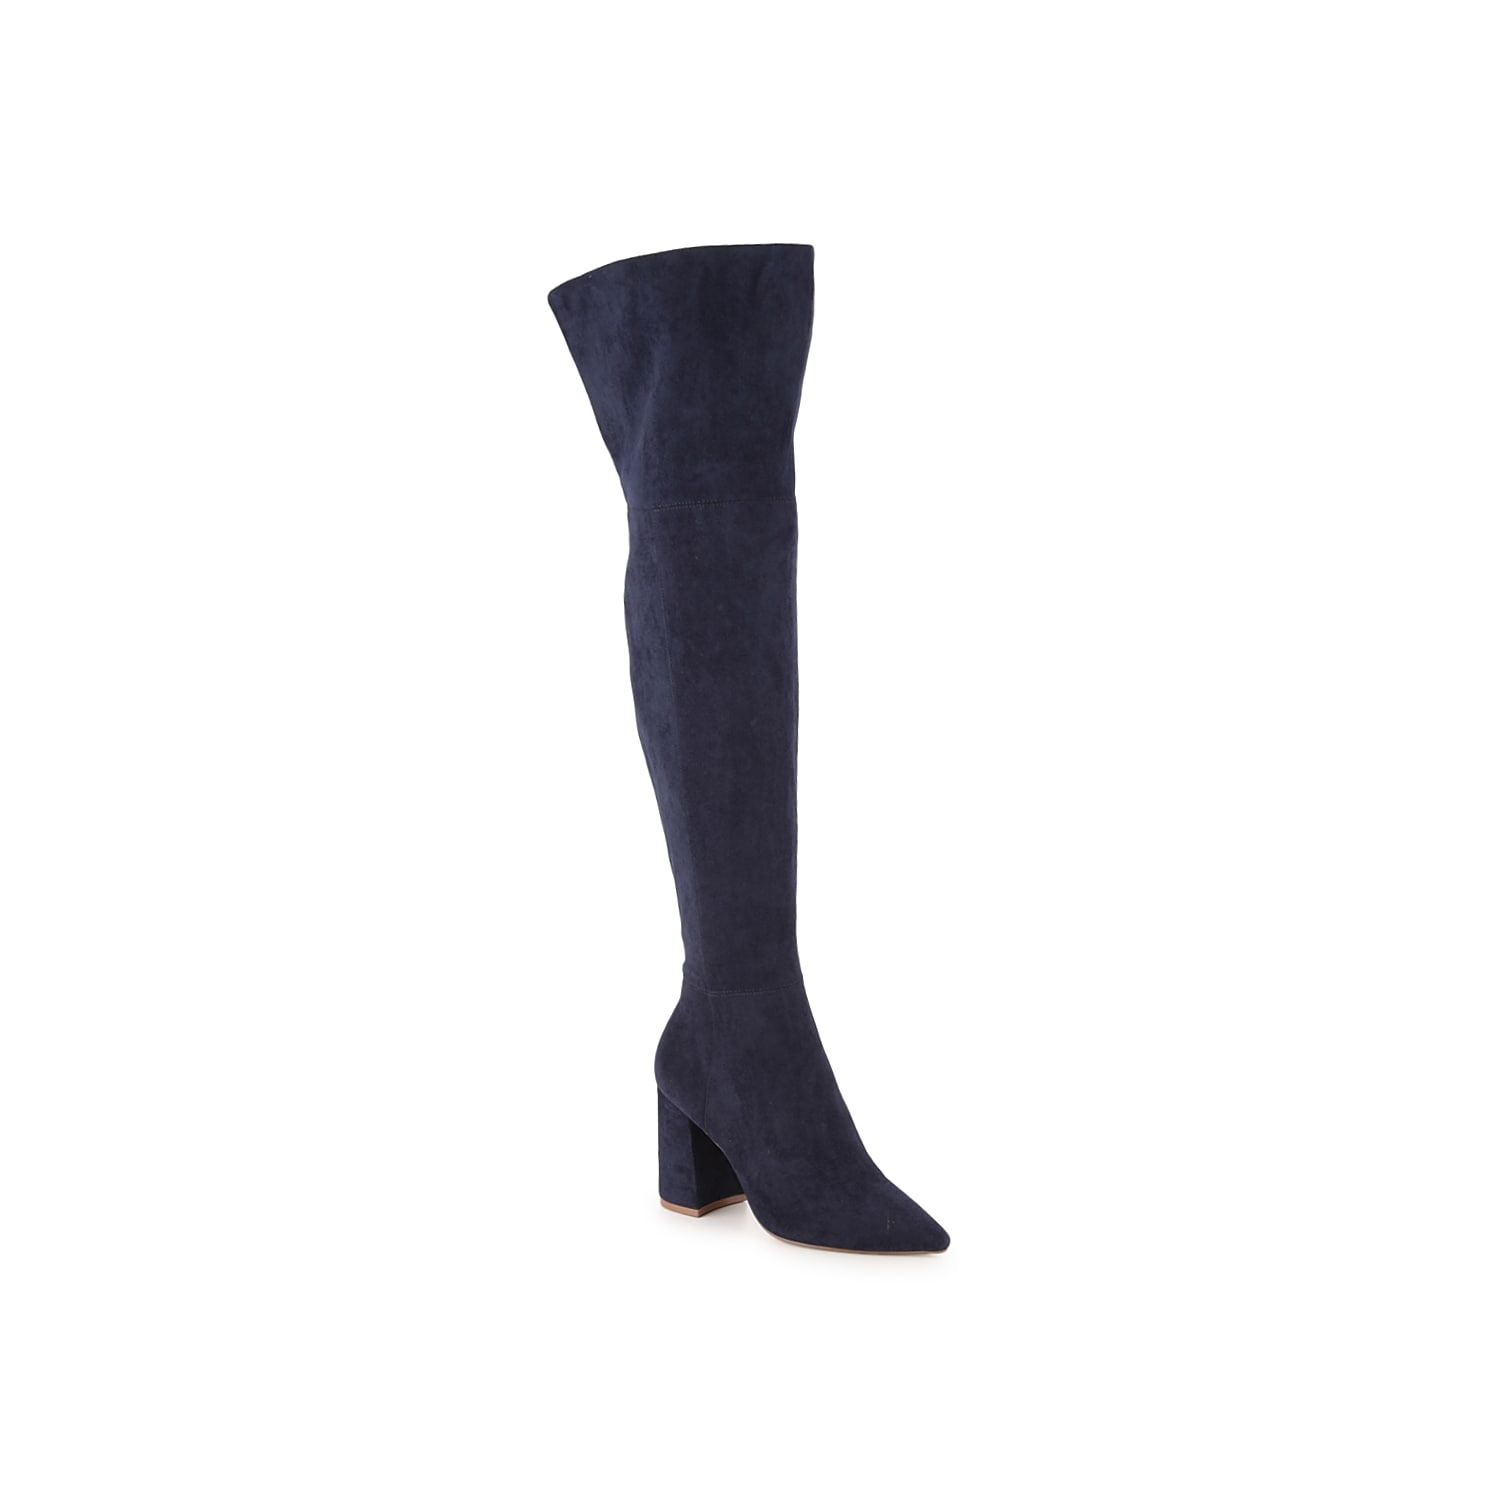 Perfect your ensemble when wearing the Viceroy over the knee boot from Charles by Charles David. This tall shaft is fashioned with a soft upper and will go great over jeans or paired with dresses! Click here for Boot Measuring Guide.